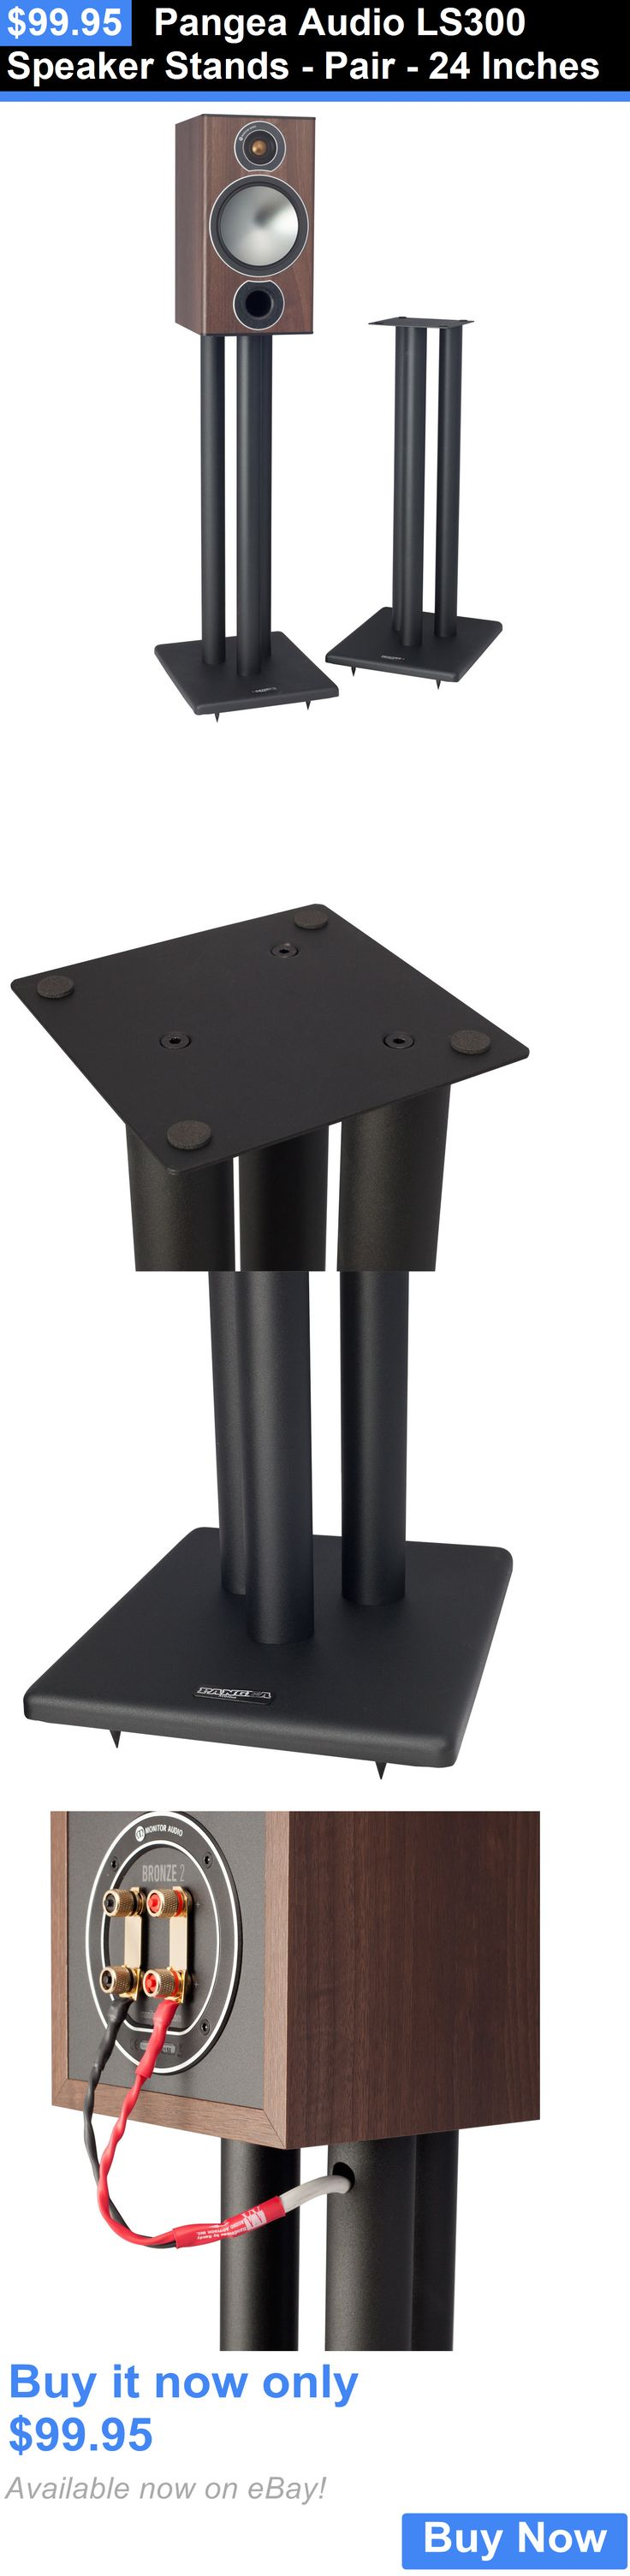 Speaker Mounts and Stands: Pangea Audio Ls300 Speaker Stands - Pair - 24 Inches BUY IT NOW ONLY: $99.95